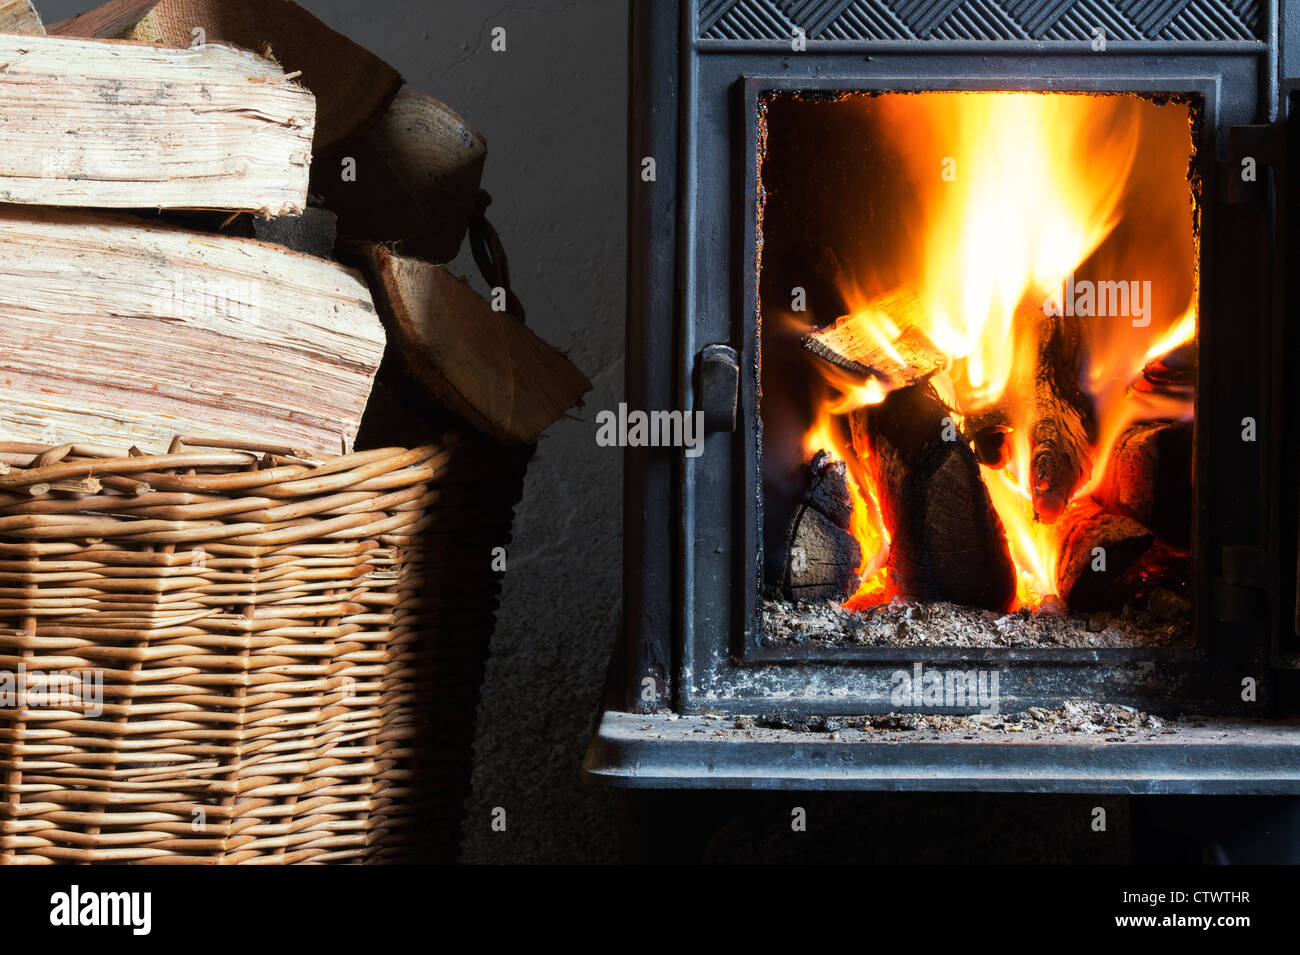 Wood burning in a woodburning stove and a basket of logs. UK Stock Photo